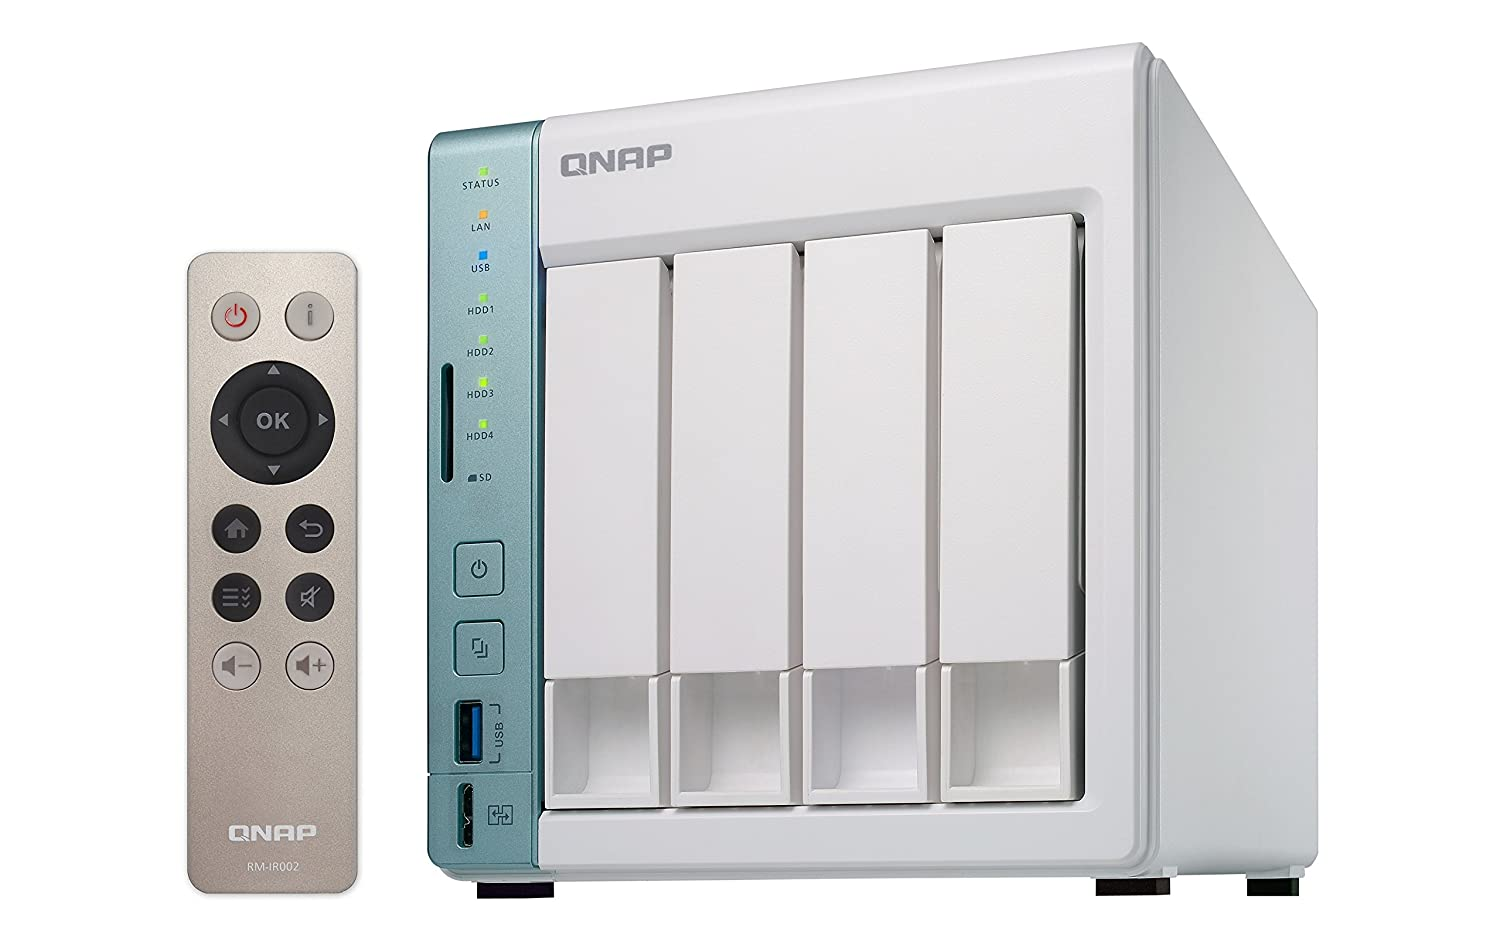 Amazon in: Buy QNAP TS-451A-2G Network Attached Storage Online at